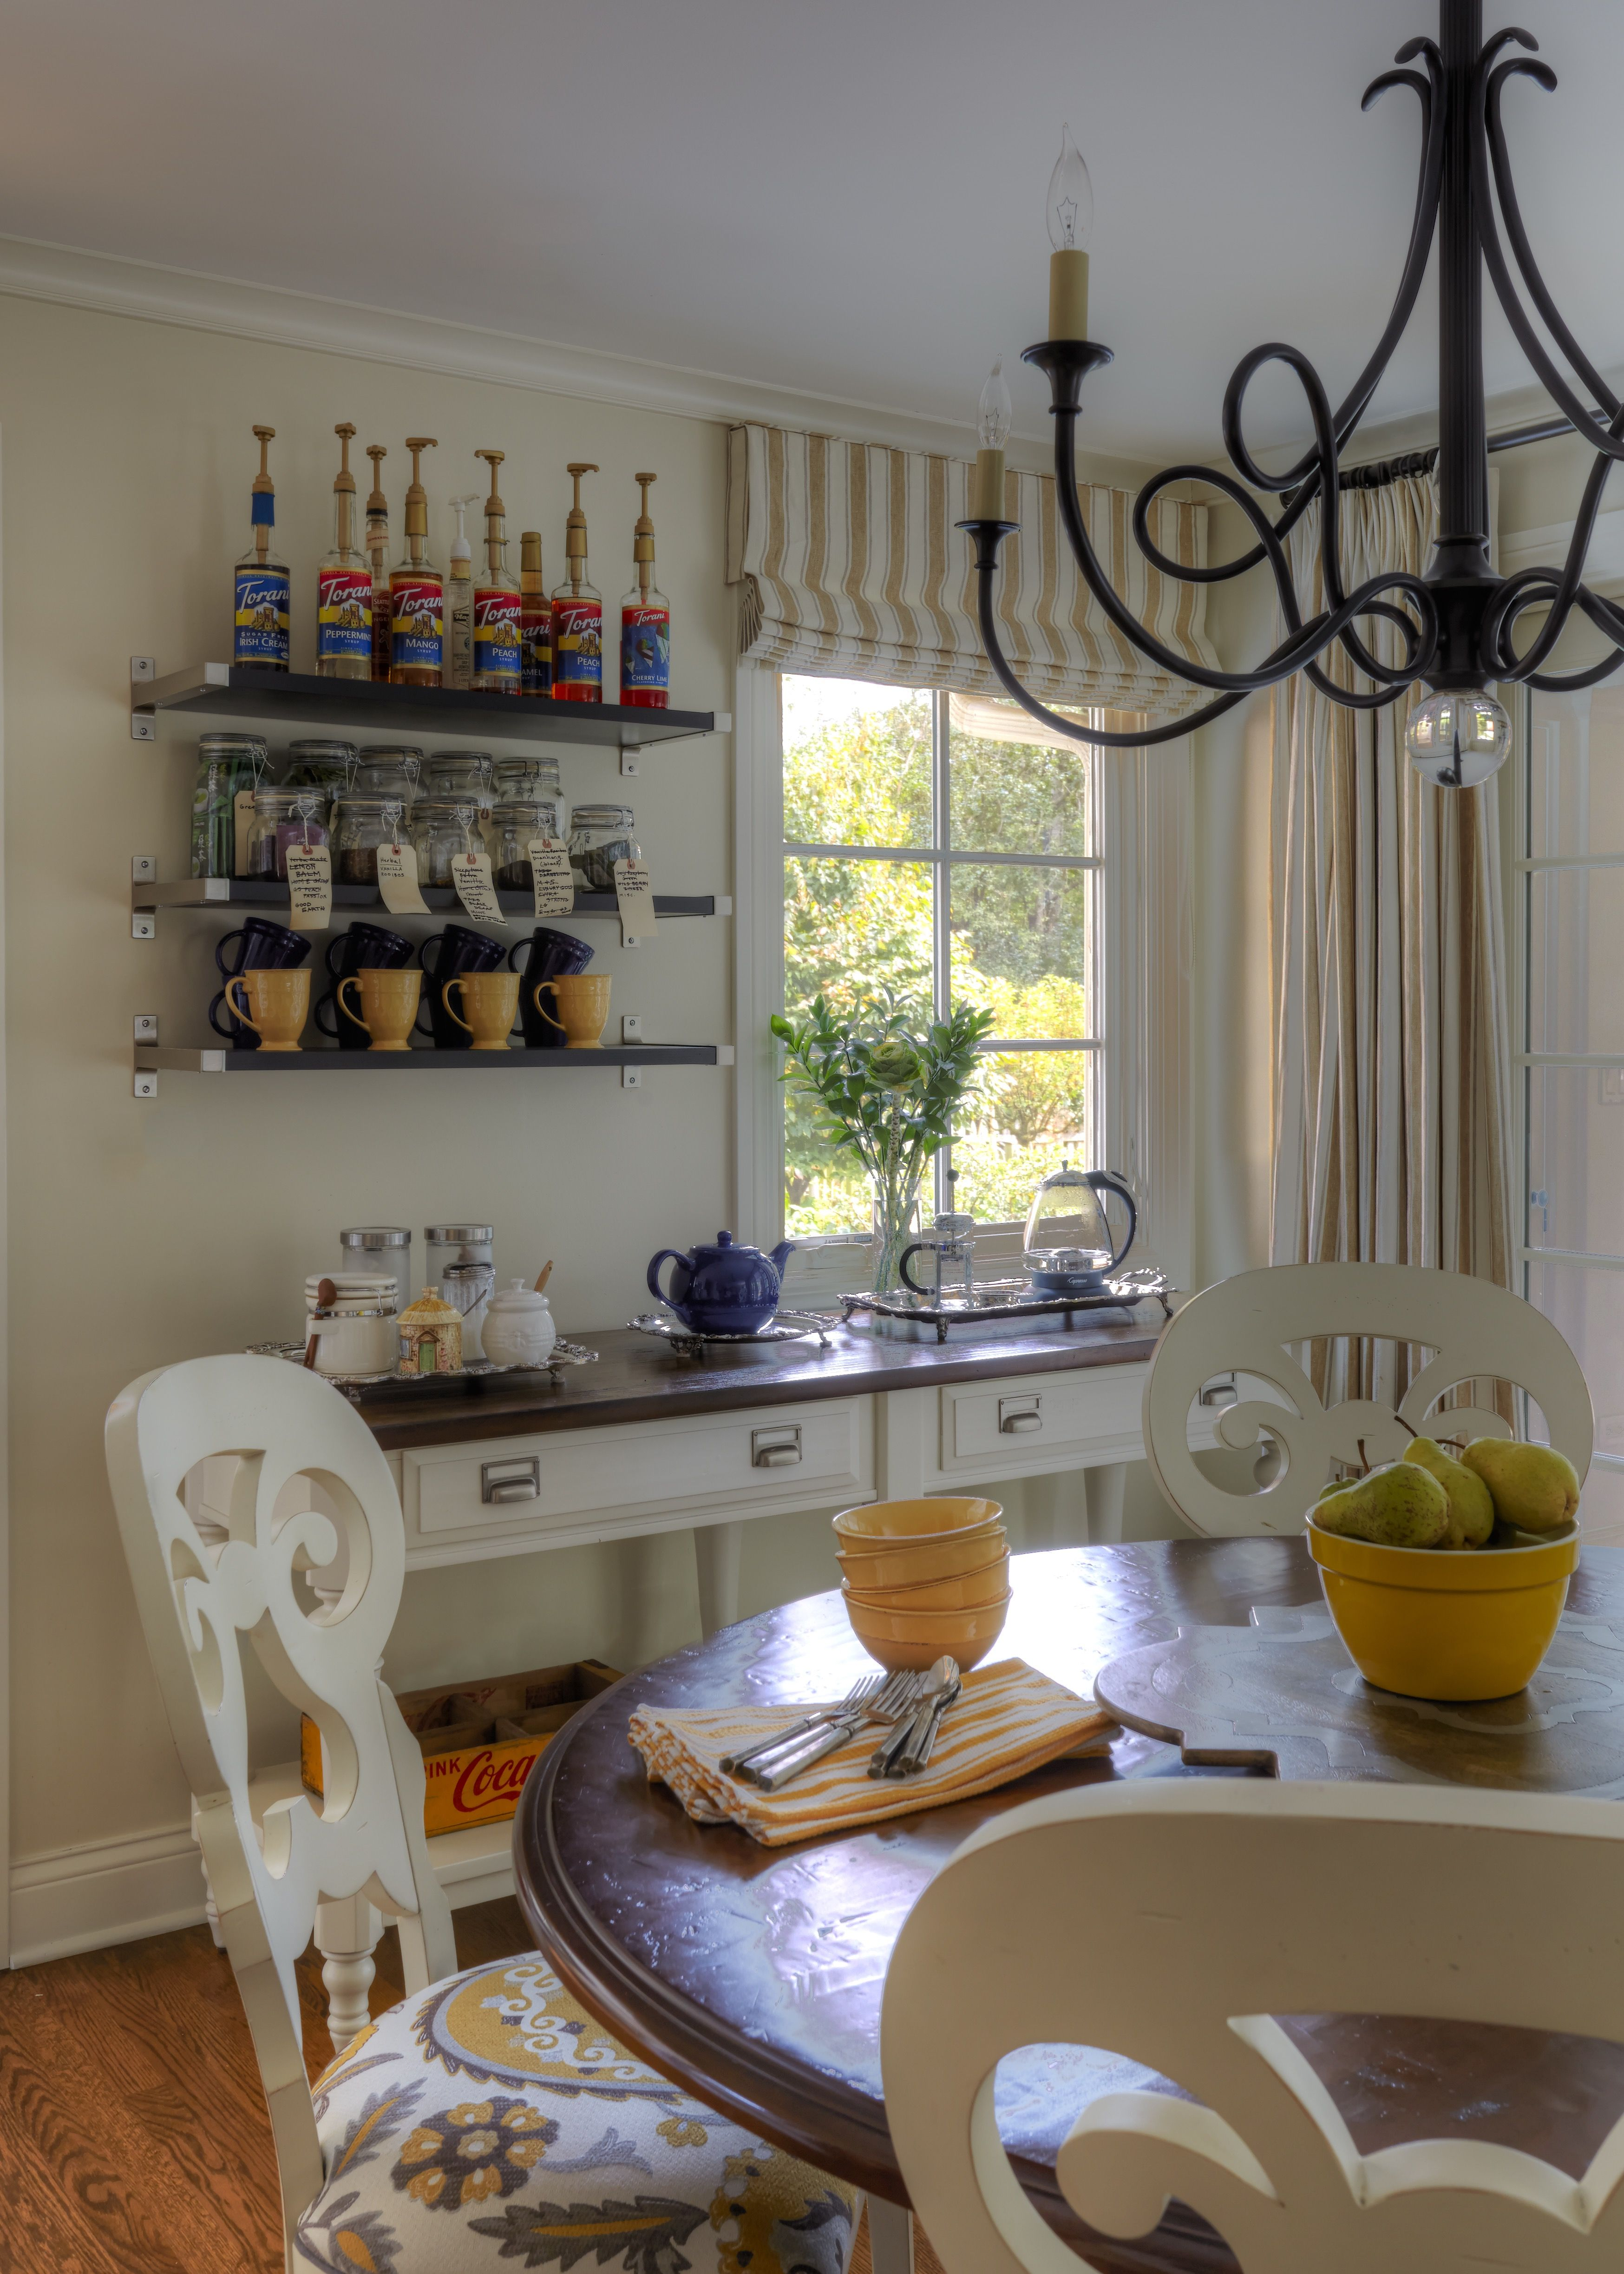 Interior Design Open Kitchen: Kitchen Coffee And Tea Area With Open Shelving And Console